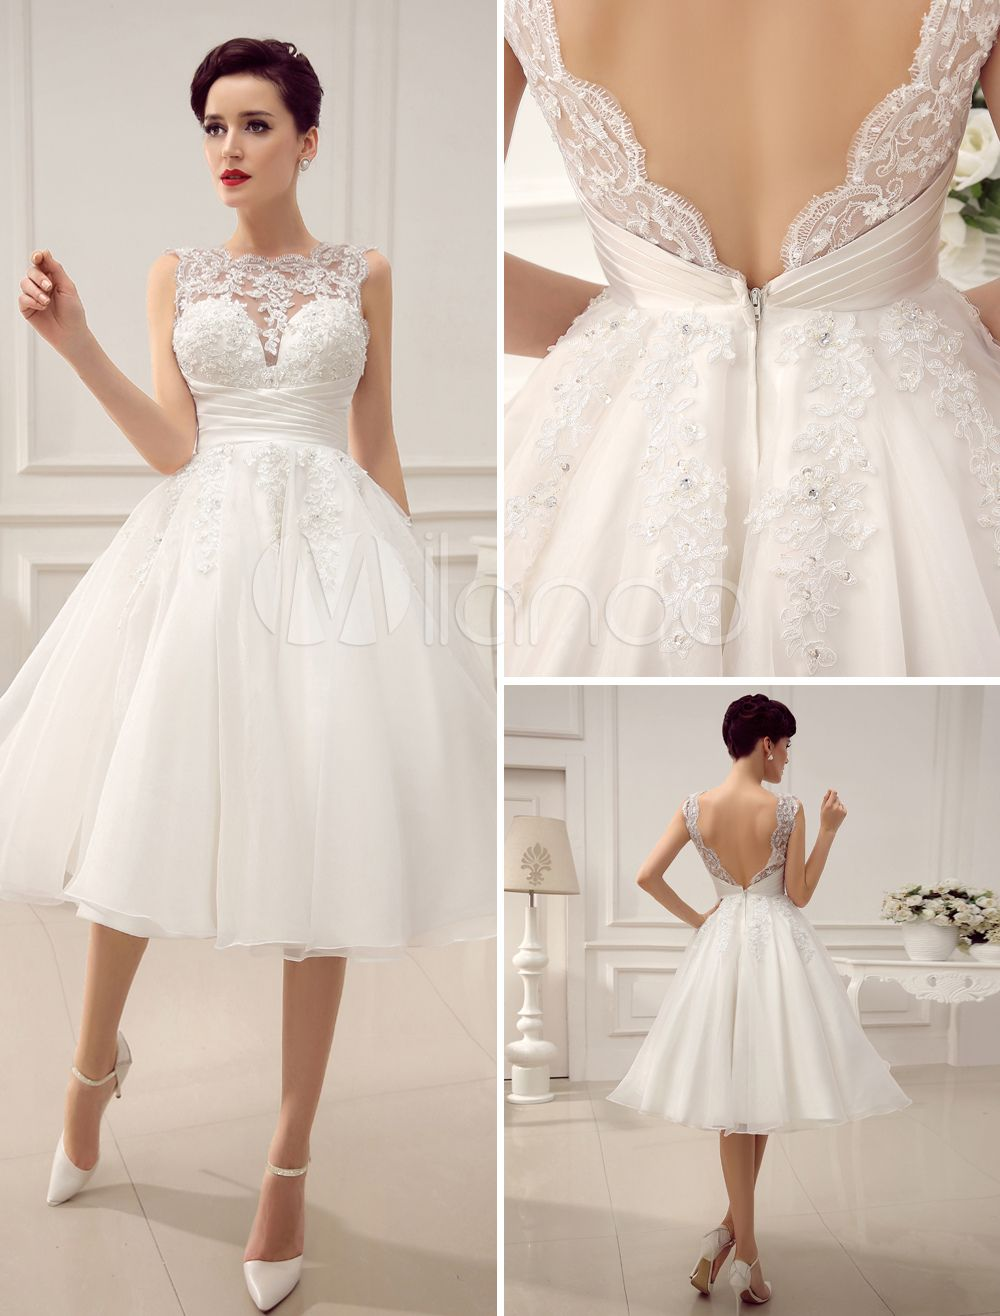 Short wedding dresses vintage us bridal gown backless lace